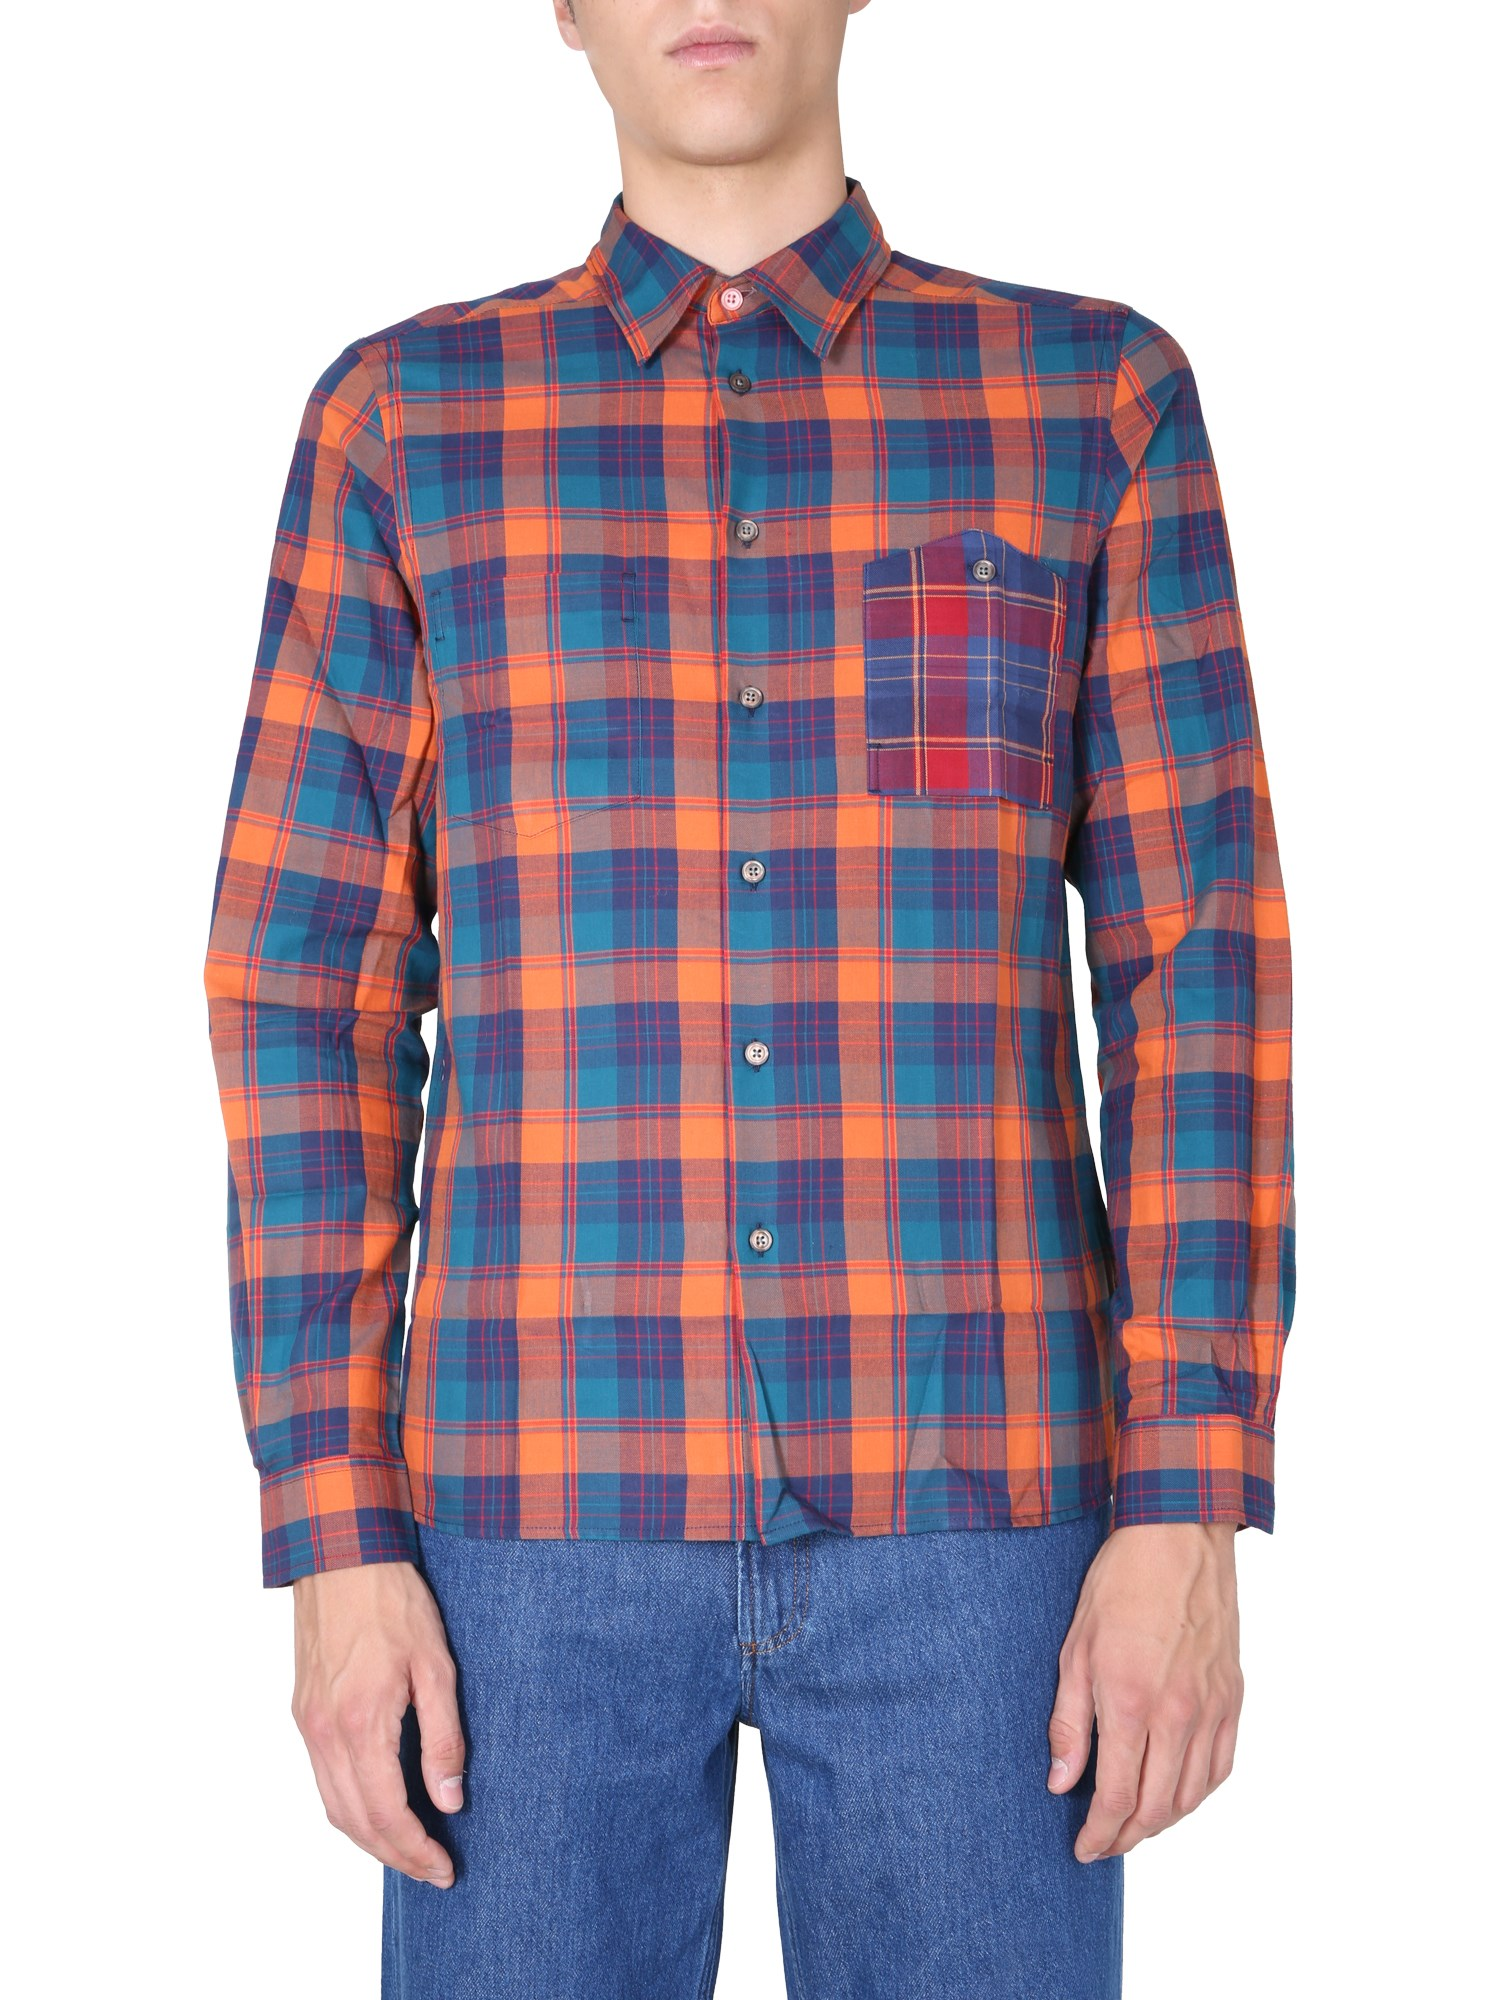 Ps by paul smith taylored fit shirt - ps by paul smith - Modalova